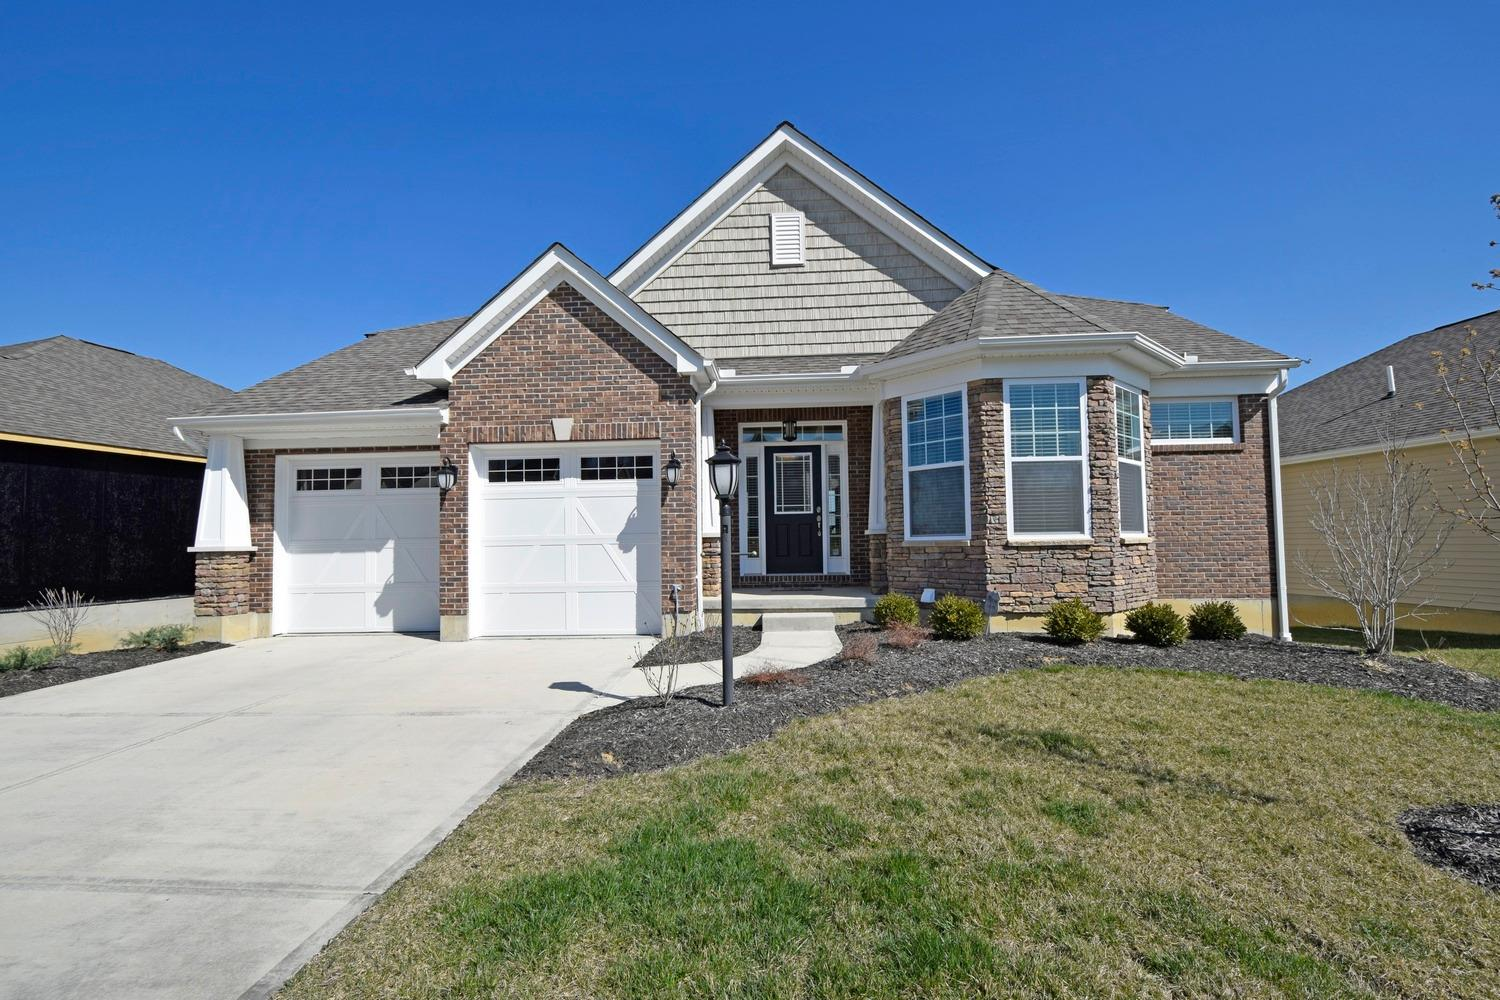 708 Miami View Trail, Union Twp, OH 45150